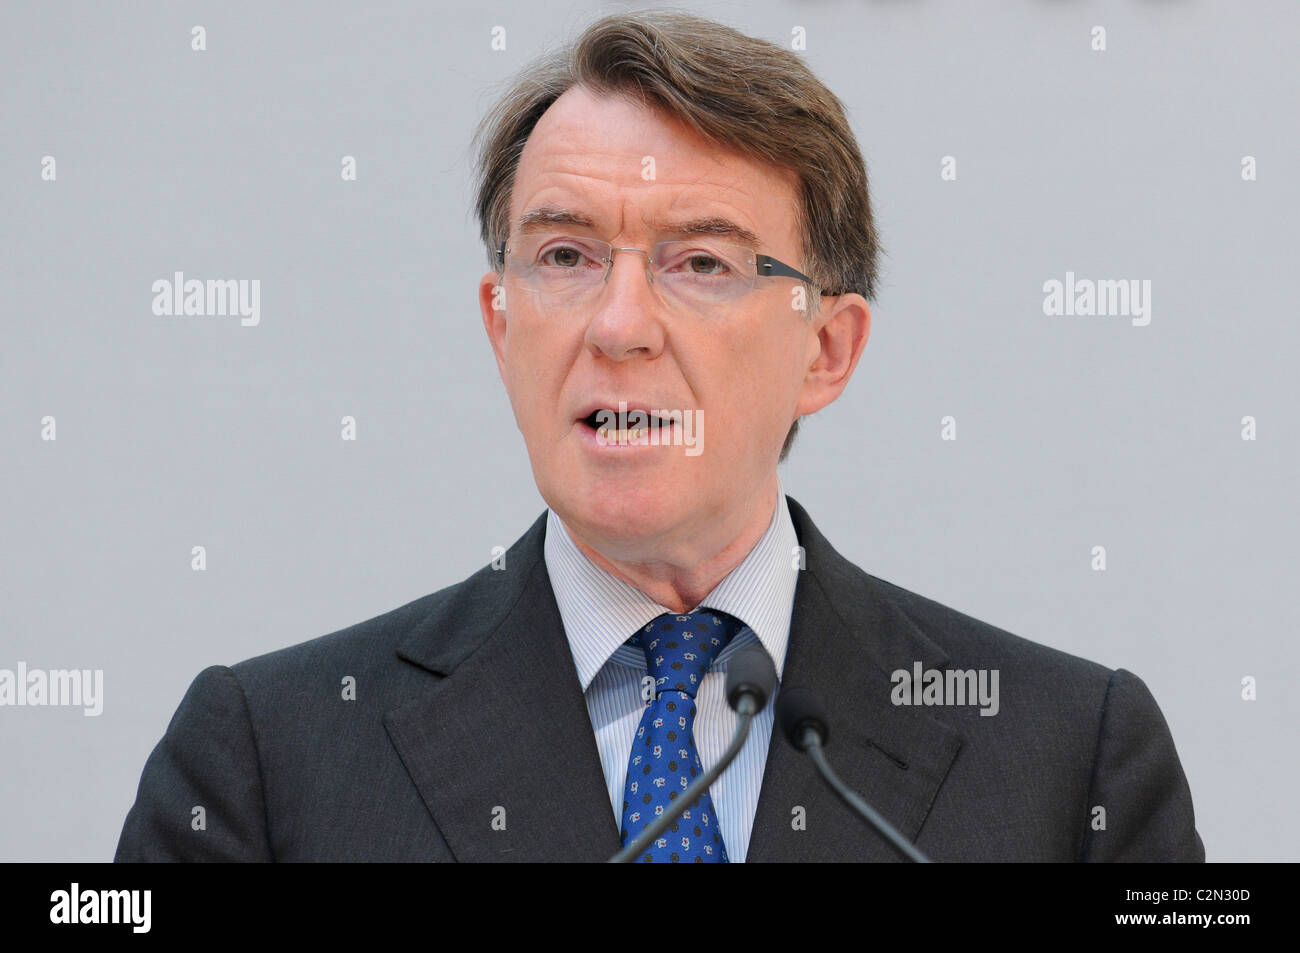 Lord Peter Mandelson attends a conference outlining London's economic reputation at the Royal Opera House, London, Stock Photo